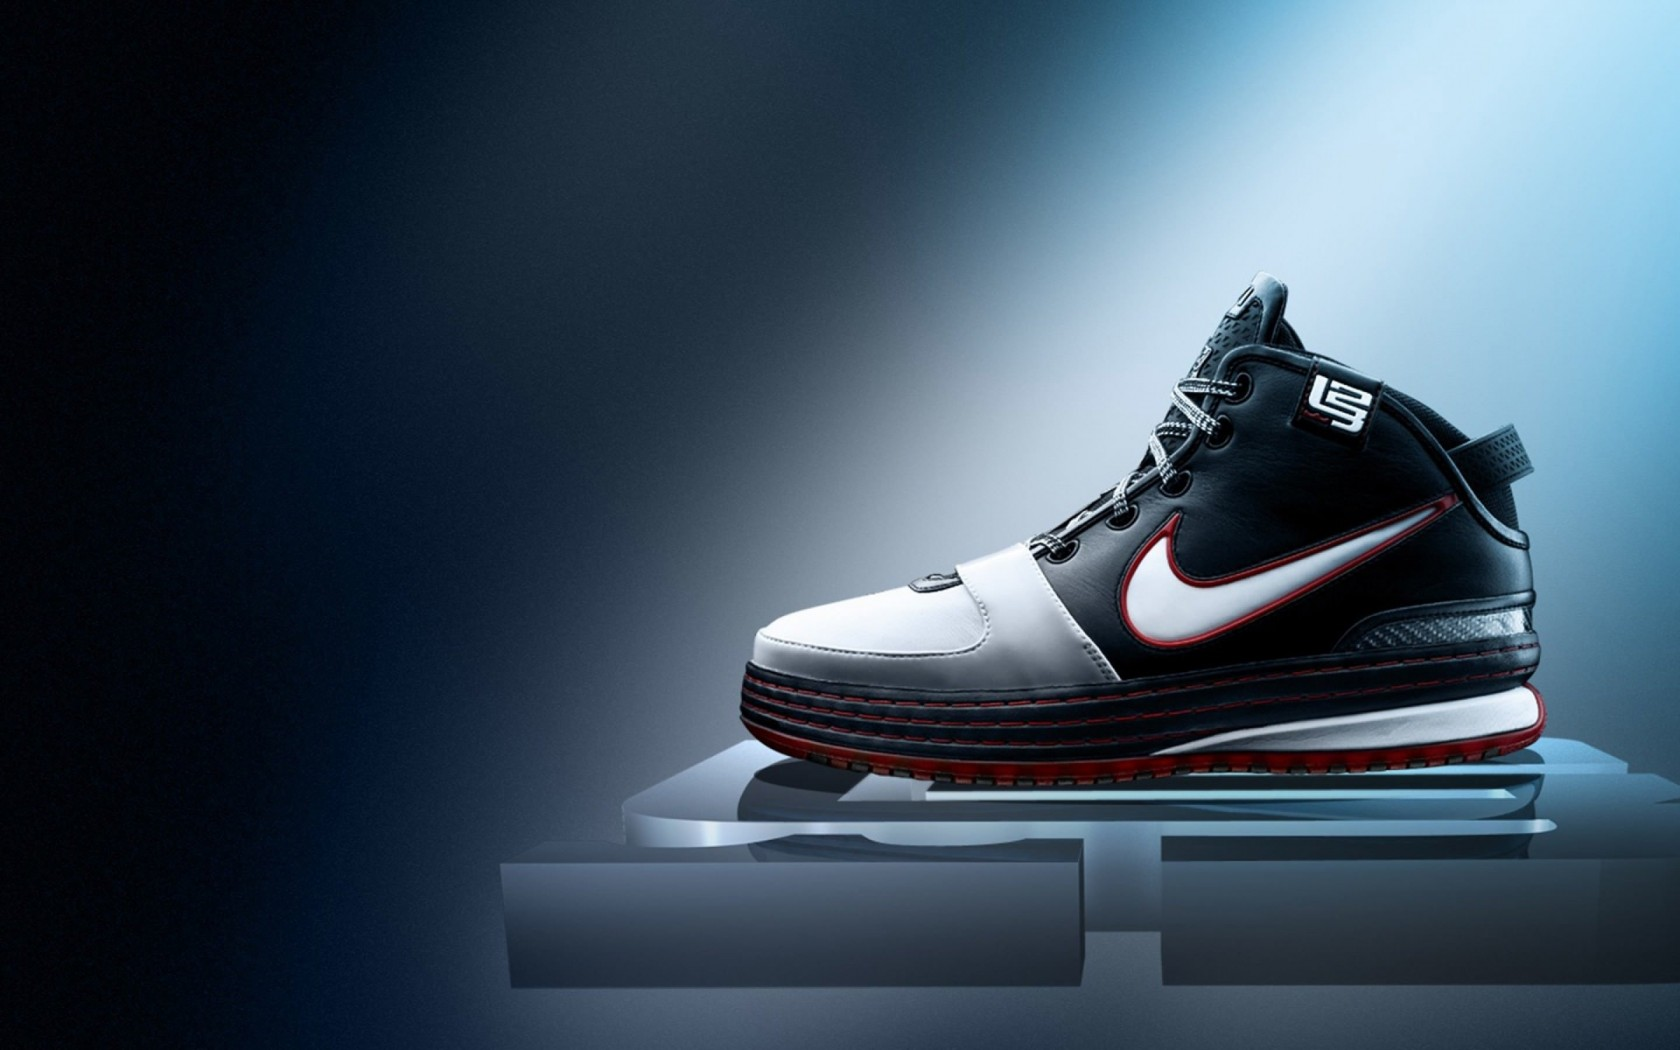 Nike Lebron James L23 Wallpaper for Desktop 1680x1050